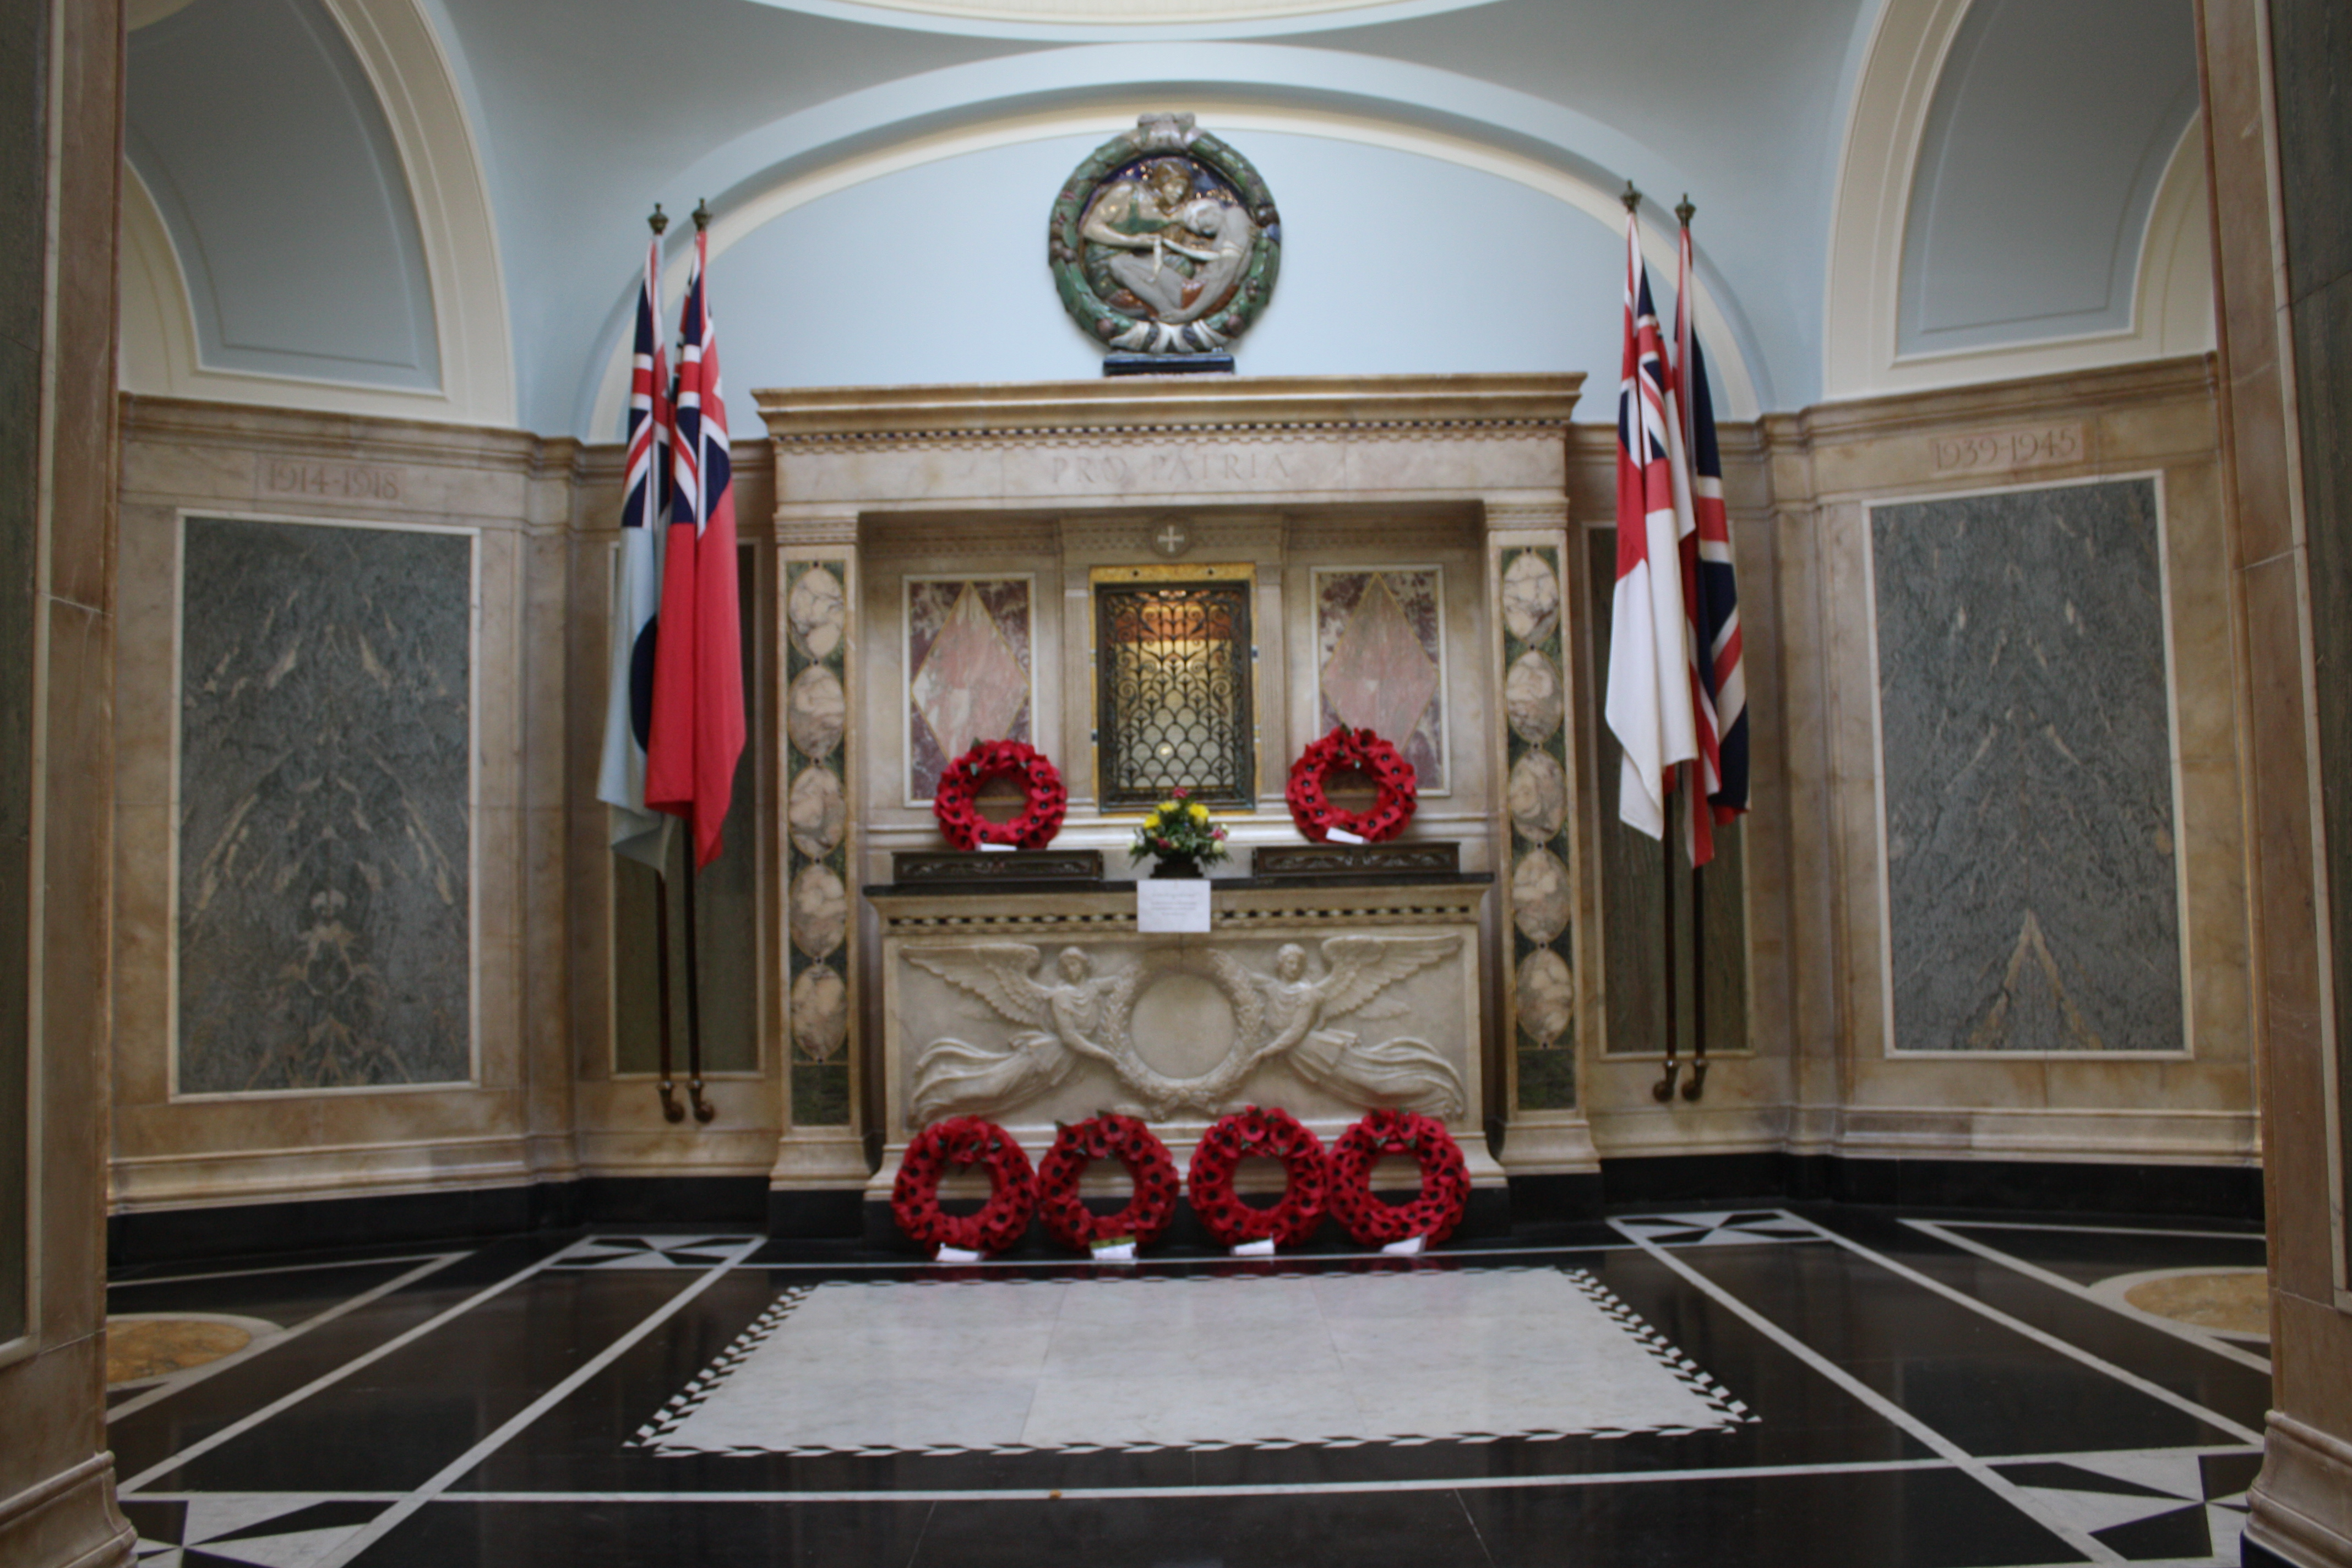 Hall of Remembrance at Memorial Hospital, Shooters Hill